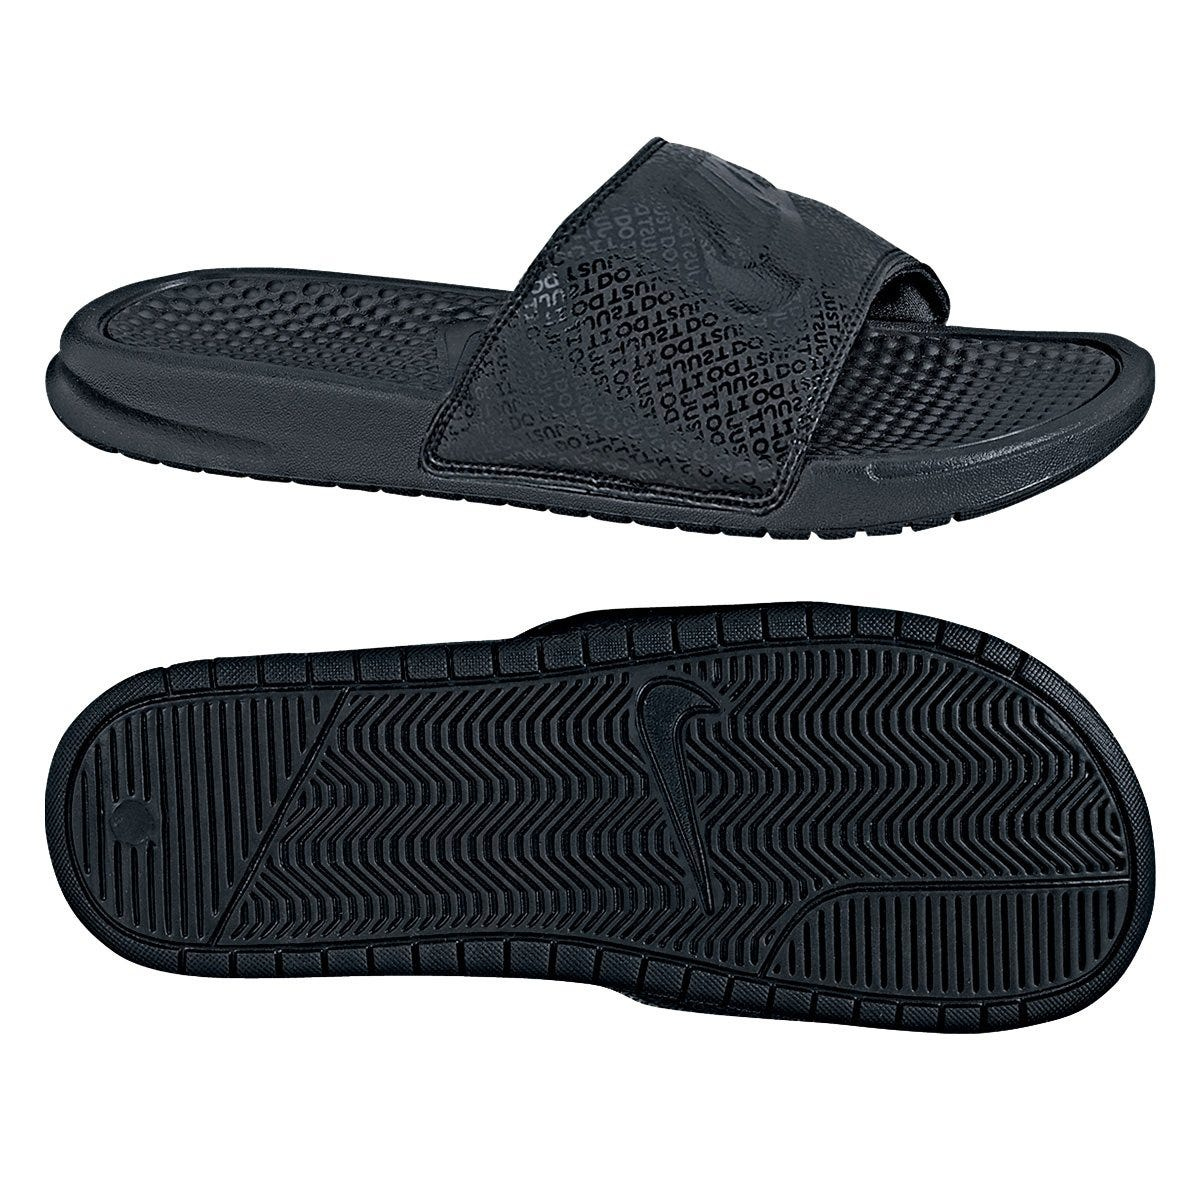 Nike Men's Benassi Just Do It Sandal - Black/Black